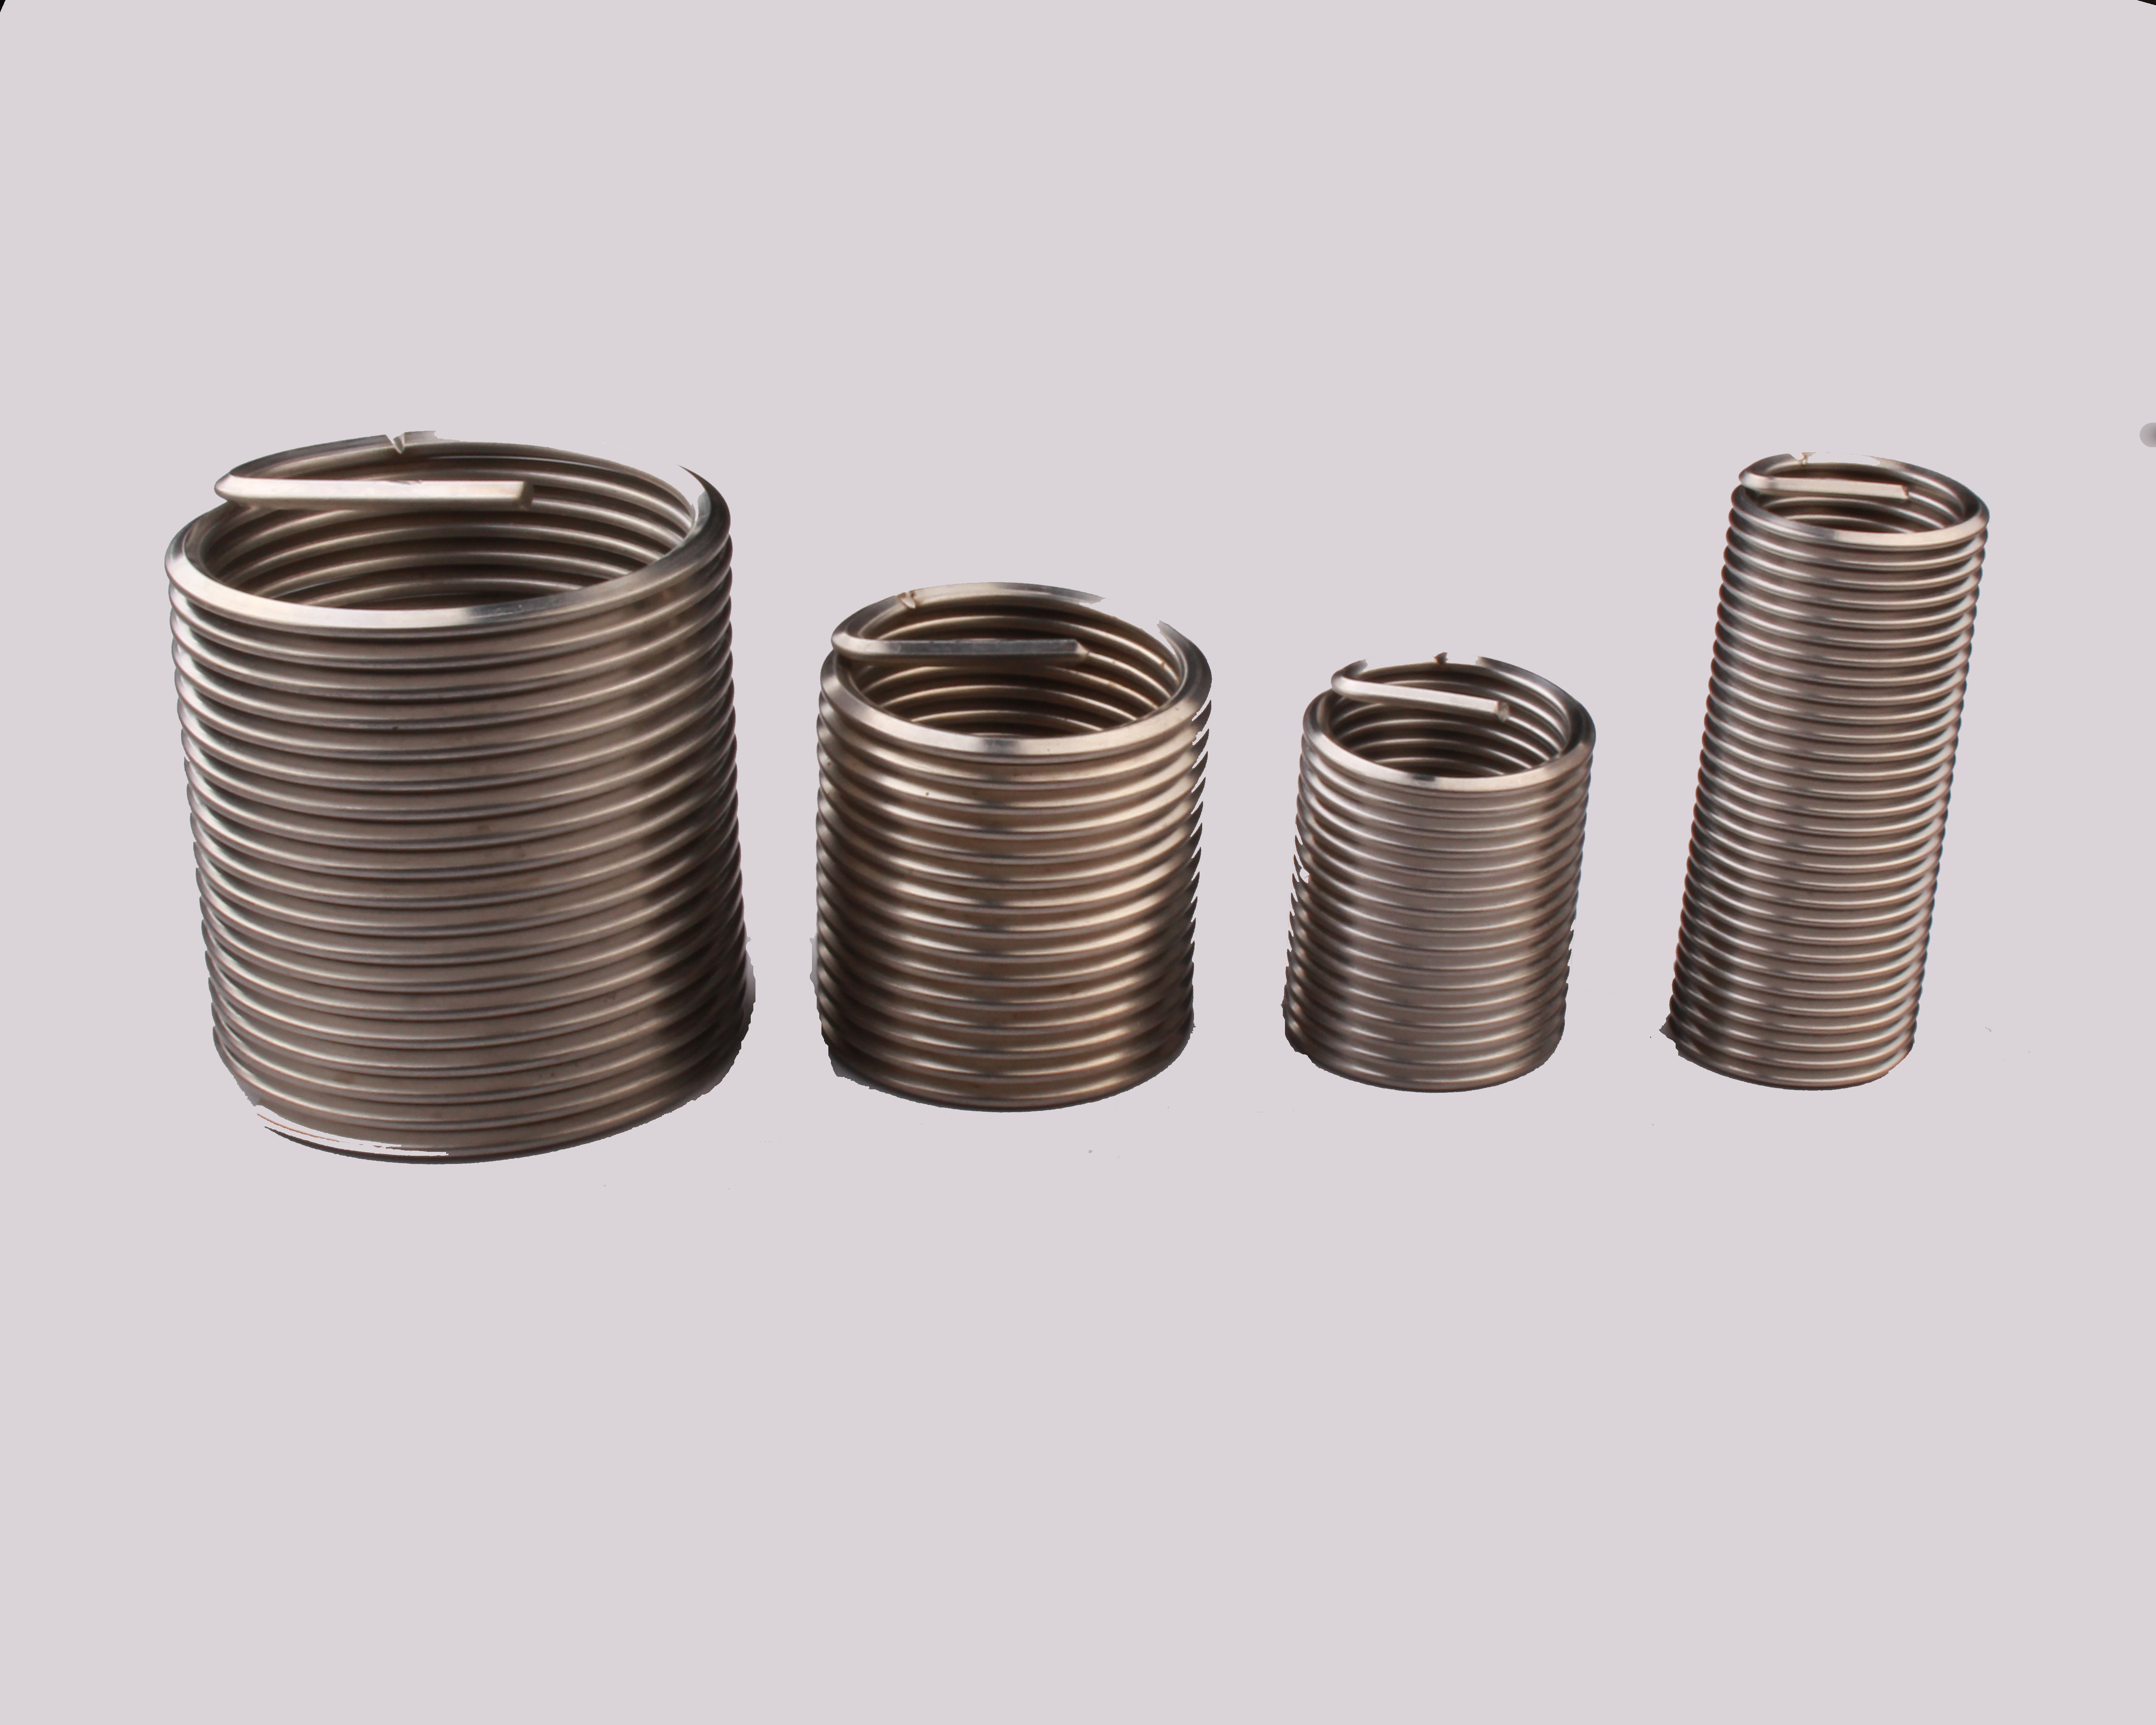 Stainless Steel Inserts 3/4-10